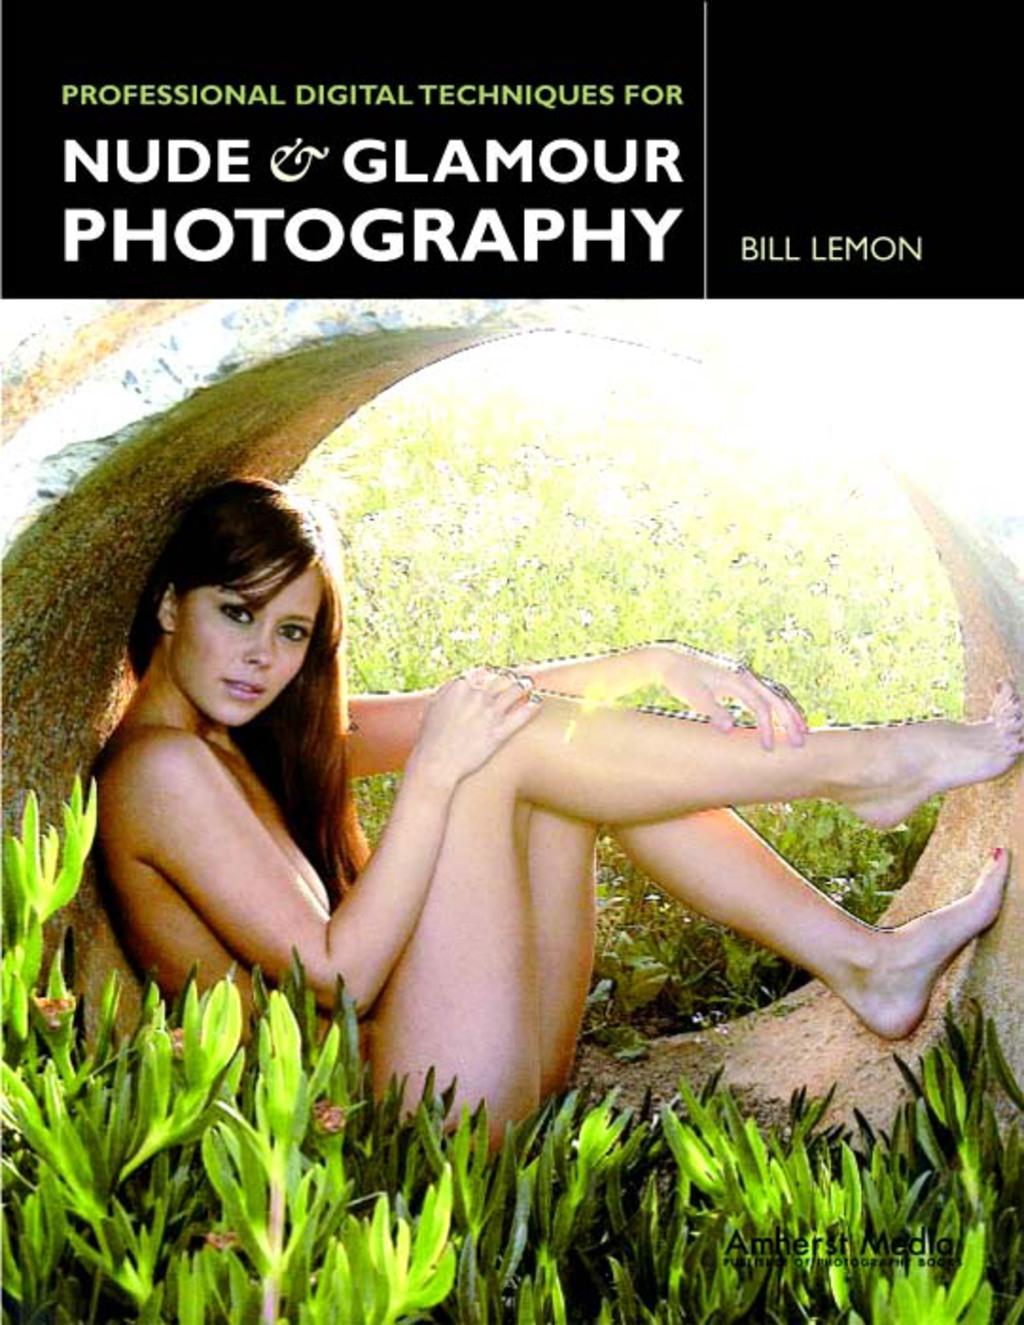 Professional Digital Techniques for Nude & Glamour Photography (ebook) eBooks